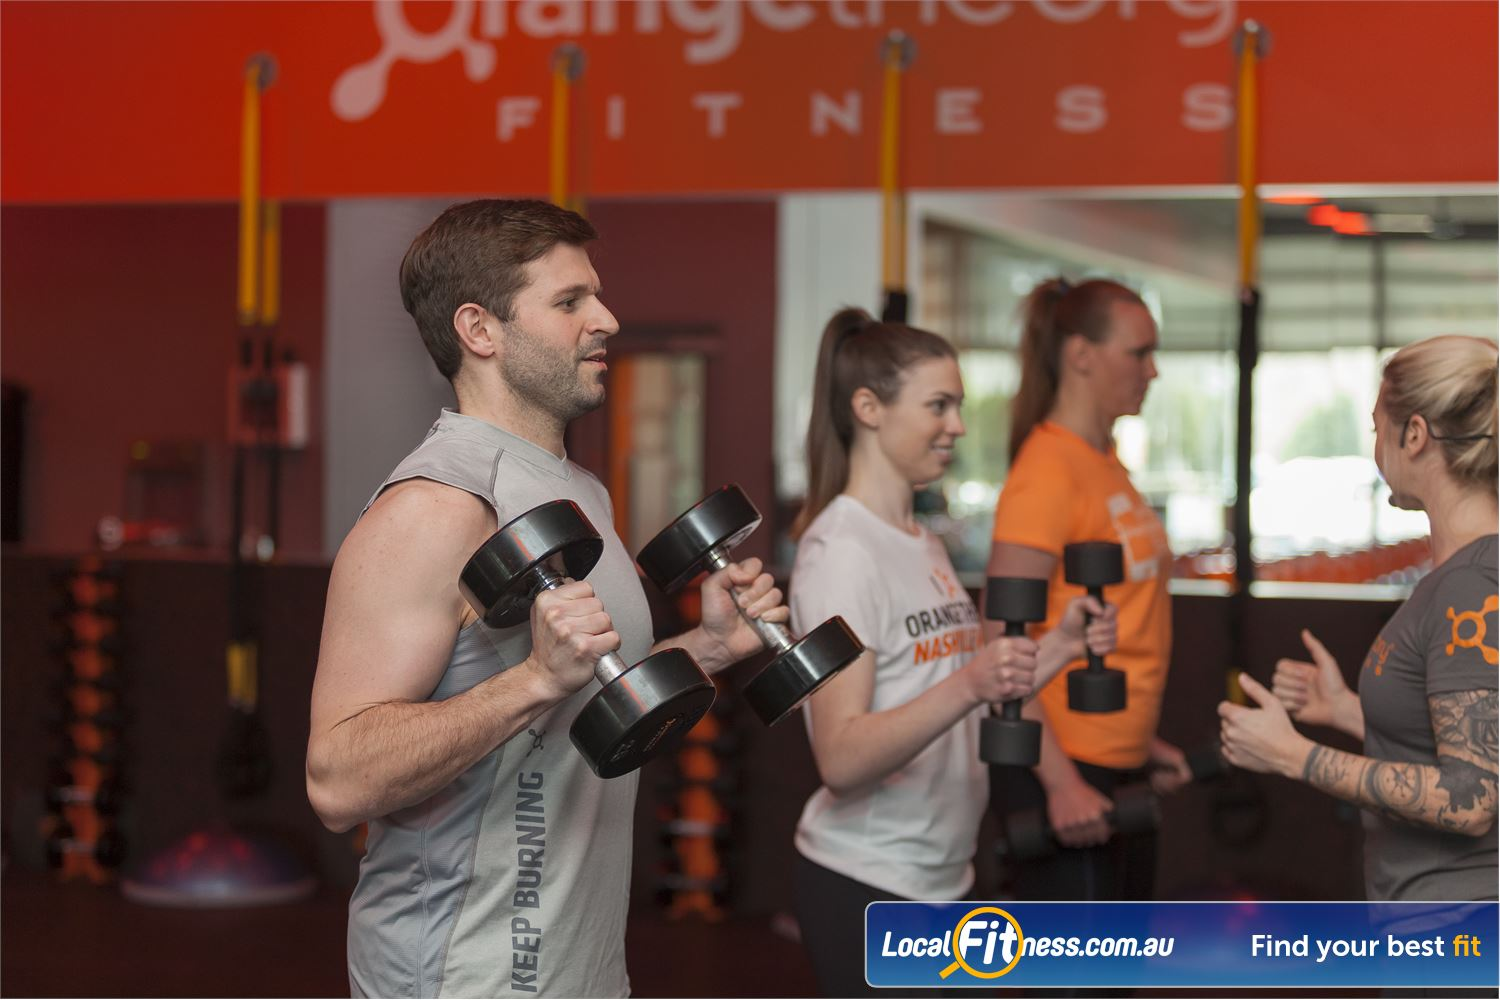 Orangetheory Fitness Near Hawthorn East Our Hawthorn gym classes cater for all ages and abilities.